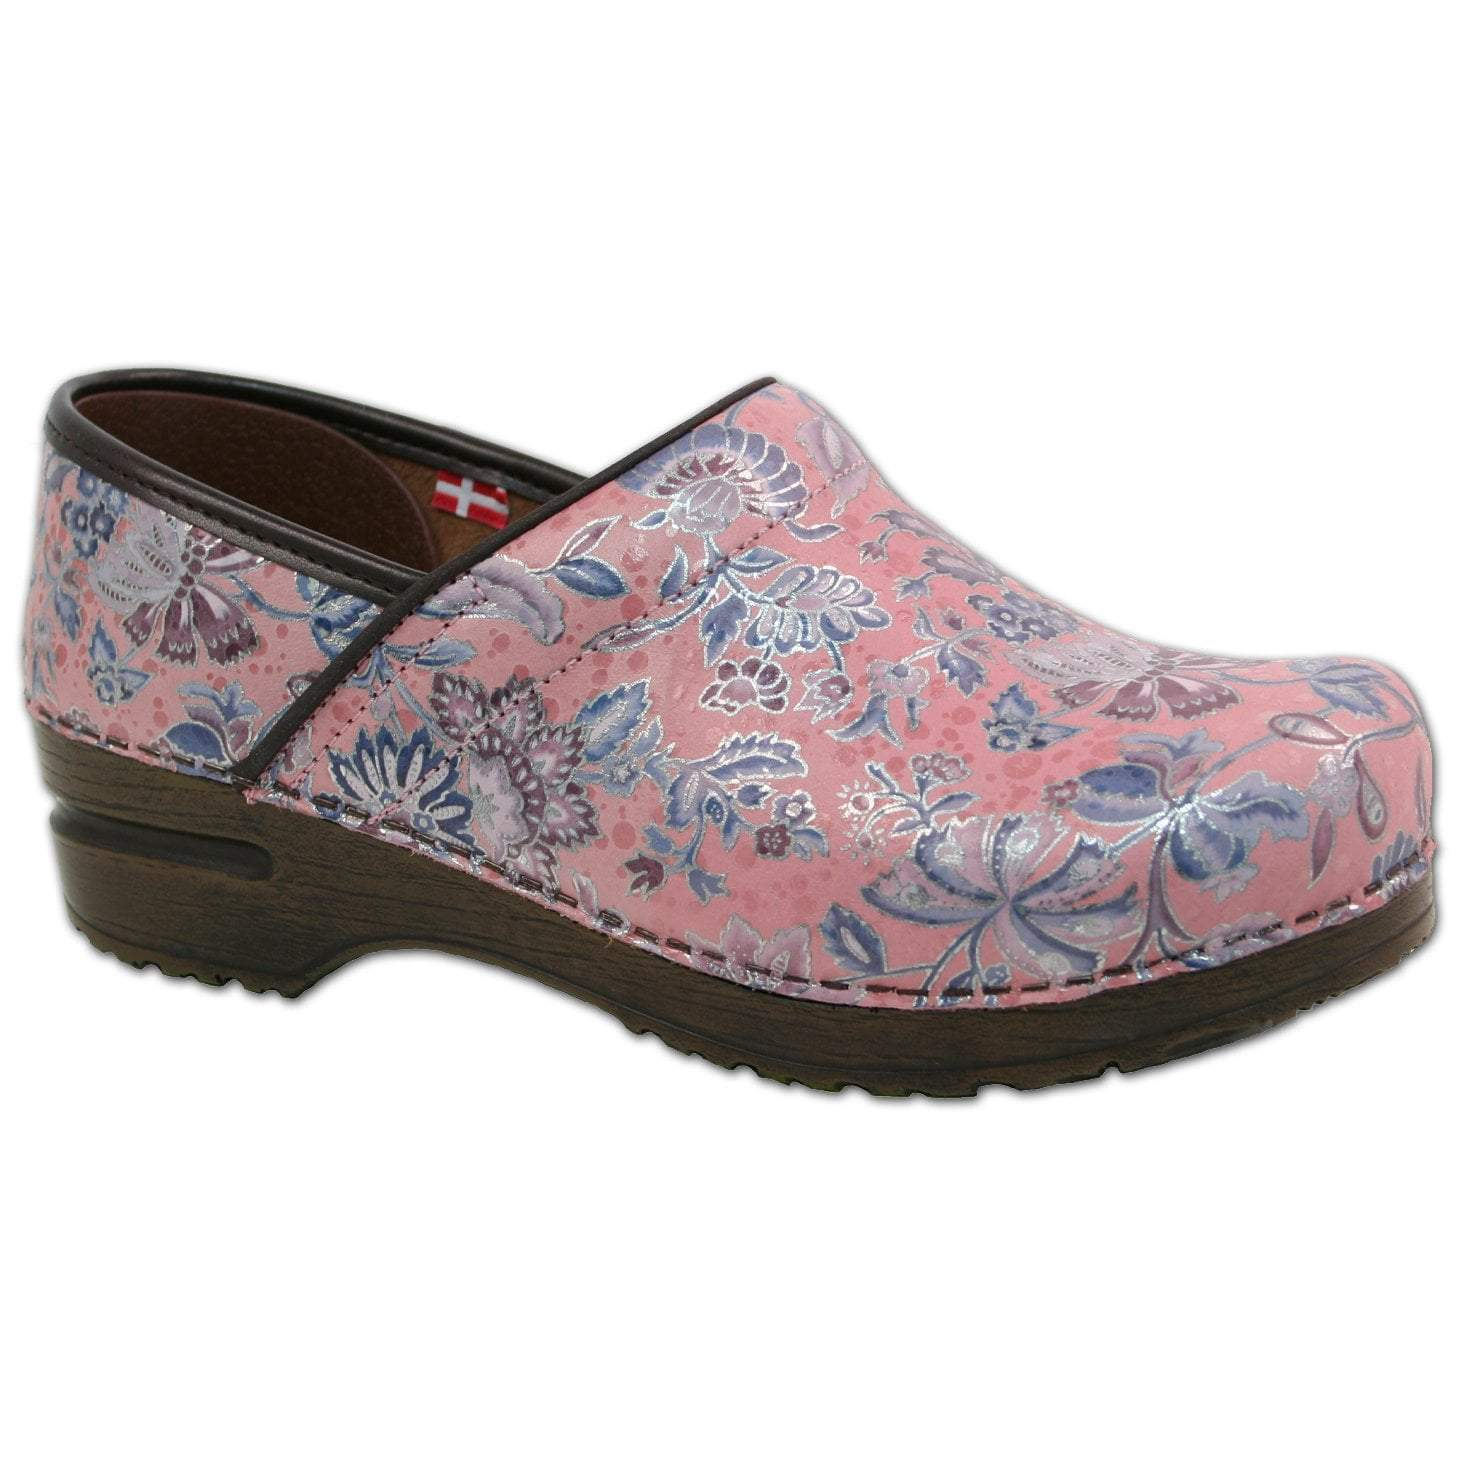 Sanita Bella Women's Closed Back Clog